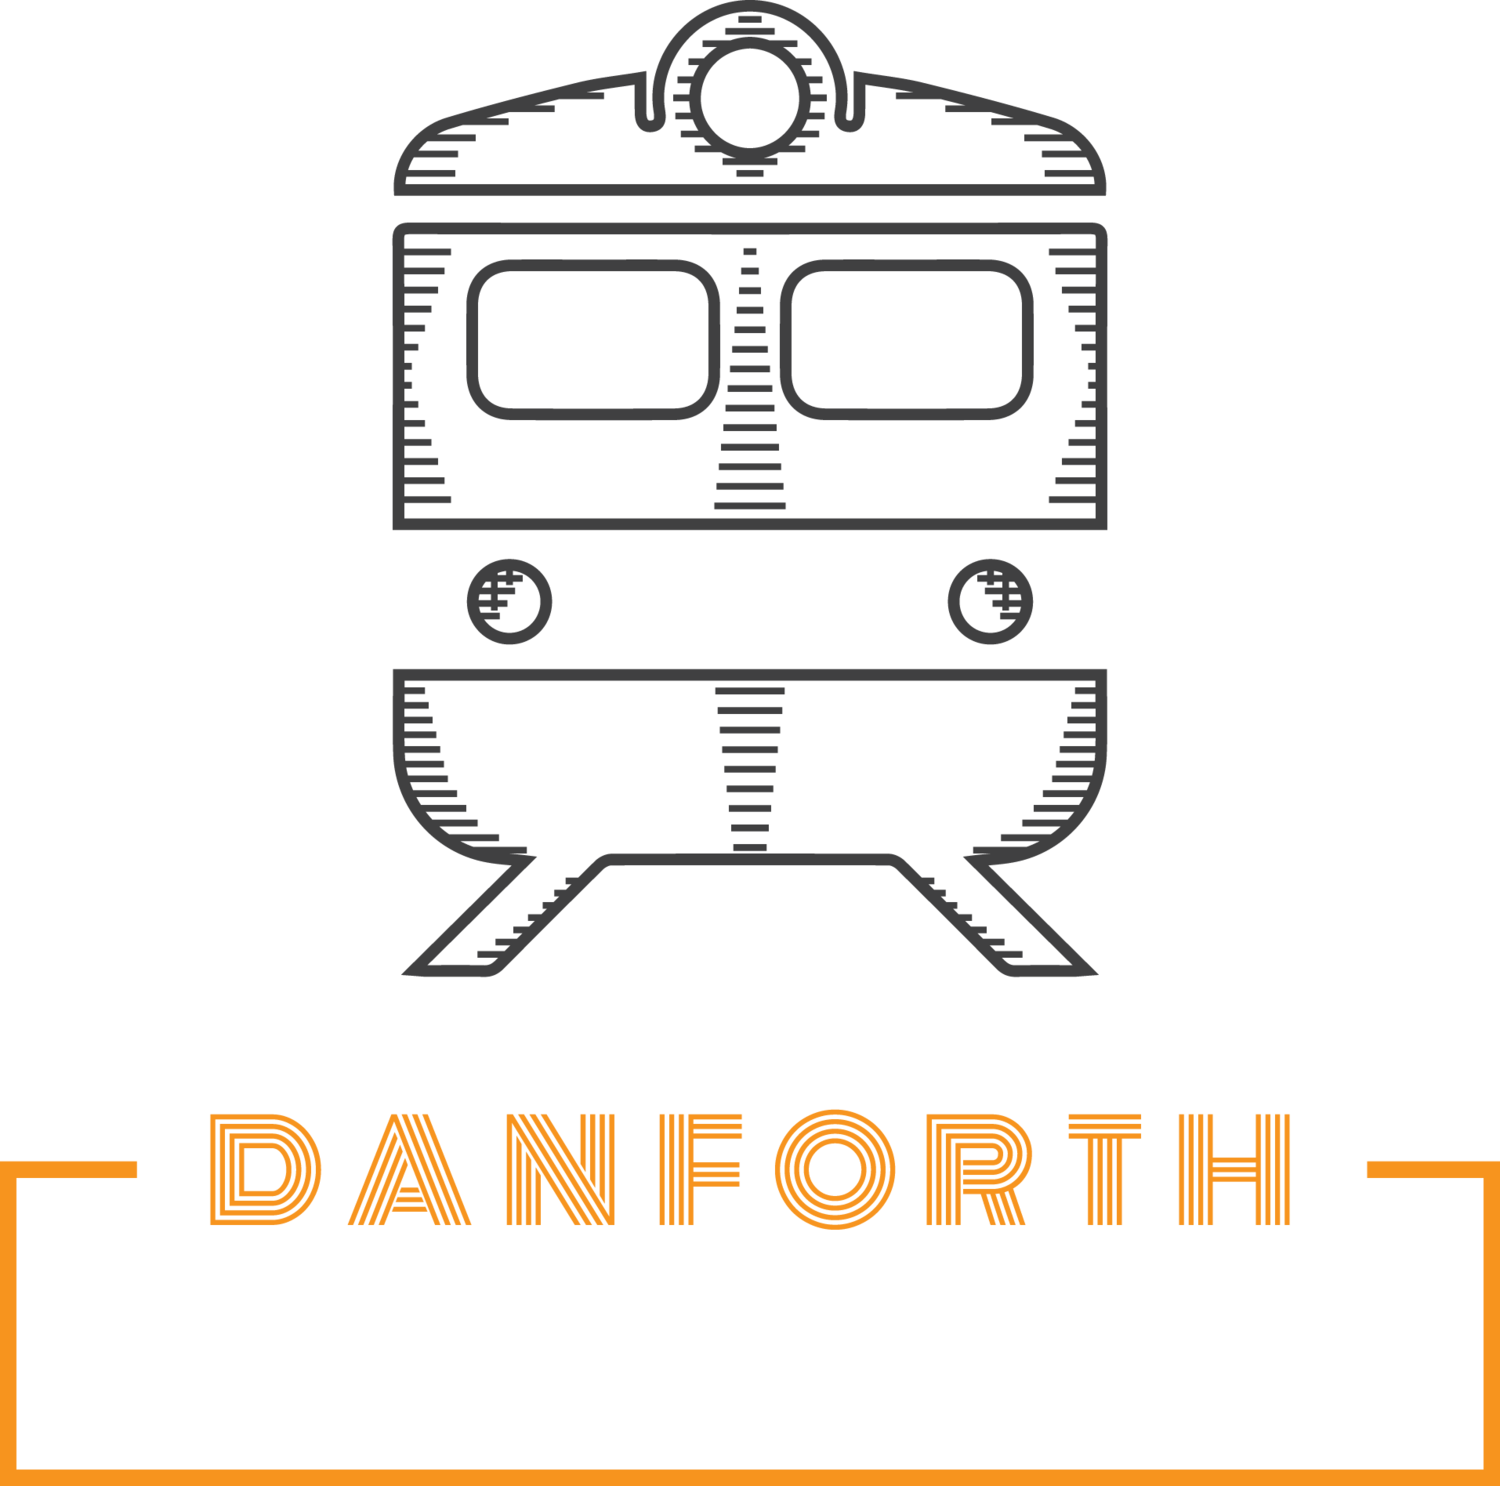 Danforth Brewery